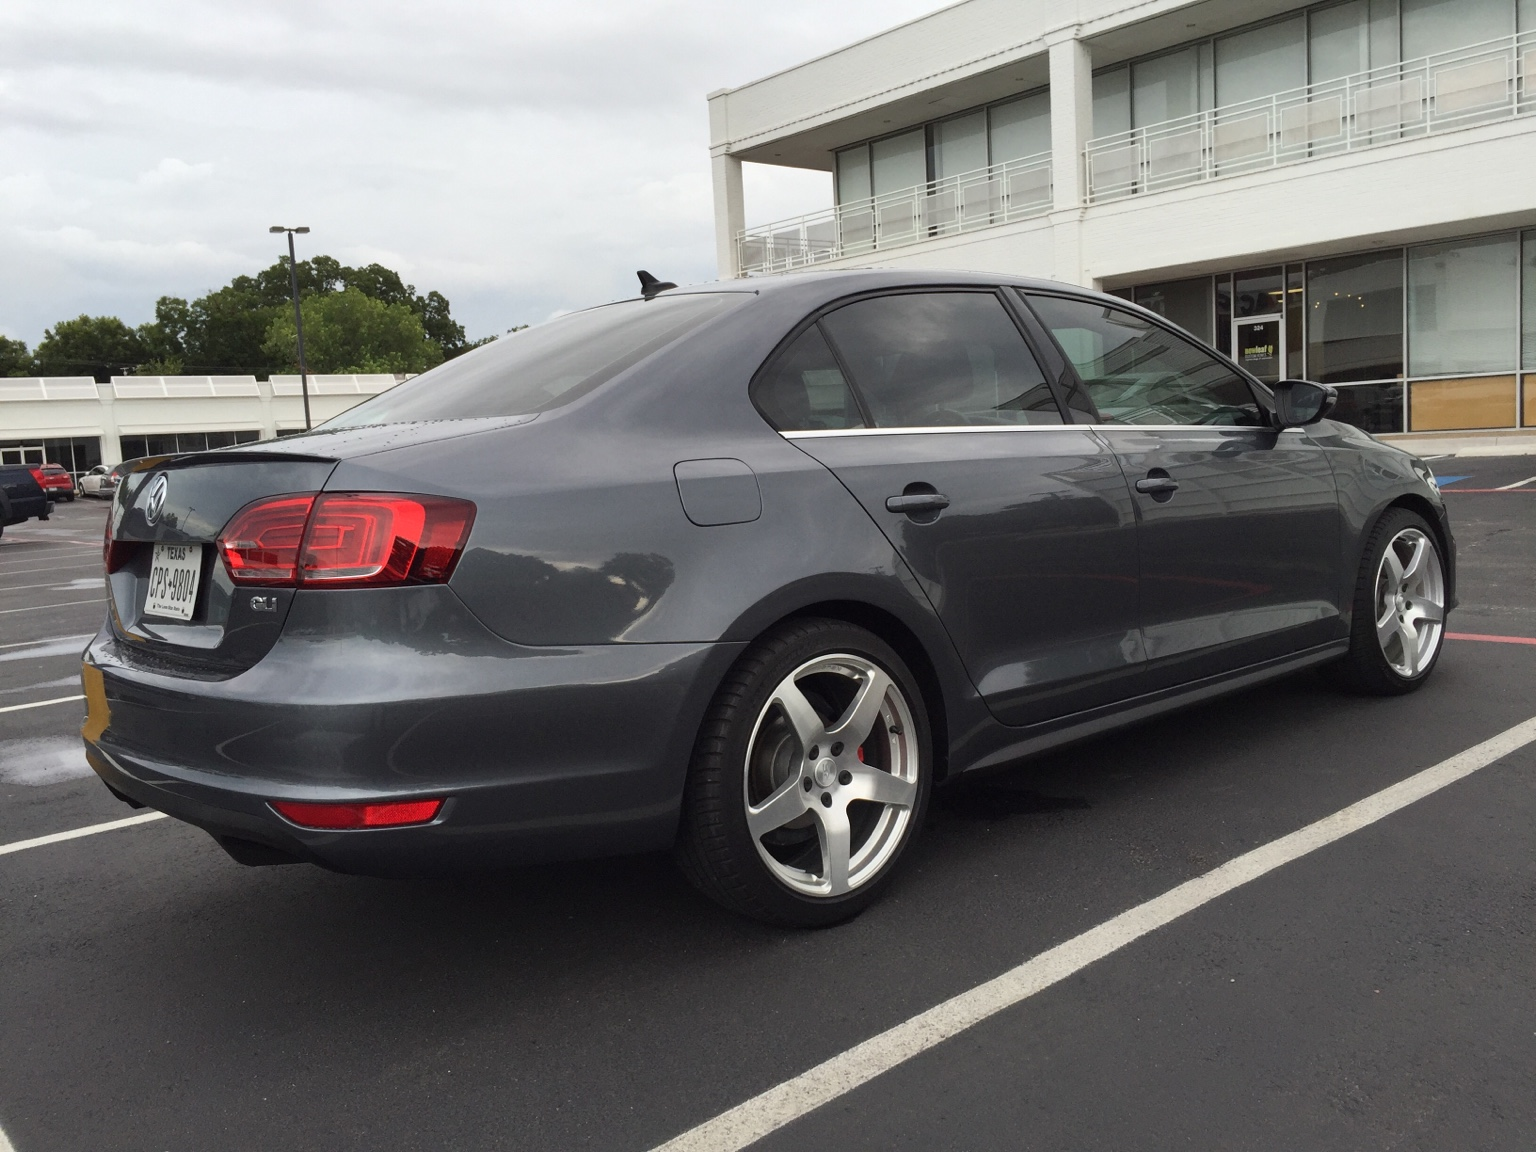 When Do The Jetta Vw 2016 Cars Come Out 2017 2018 Best